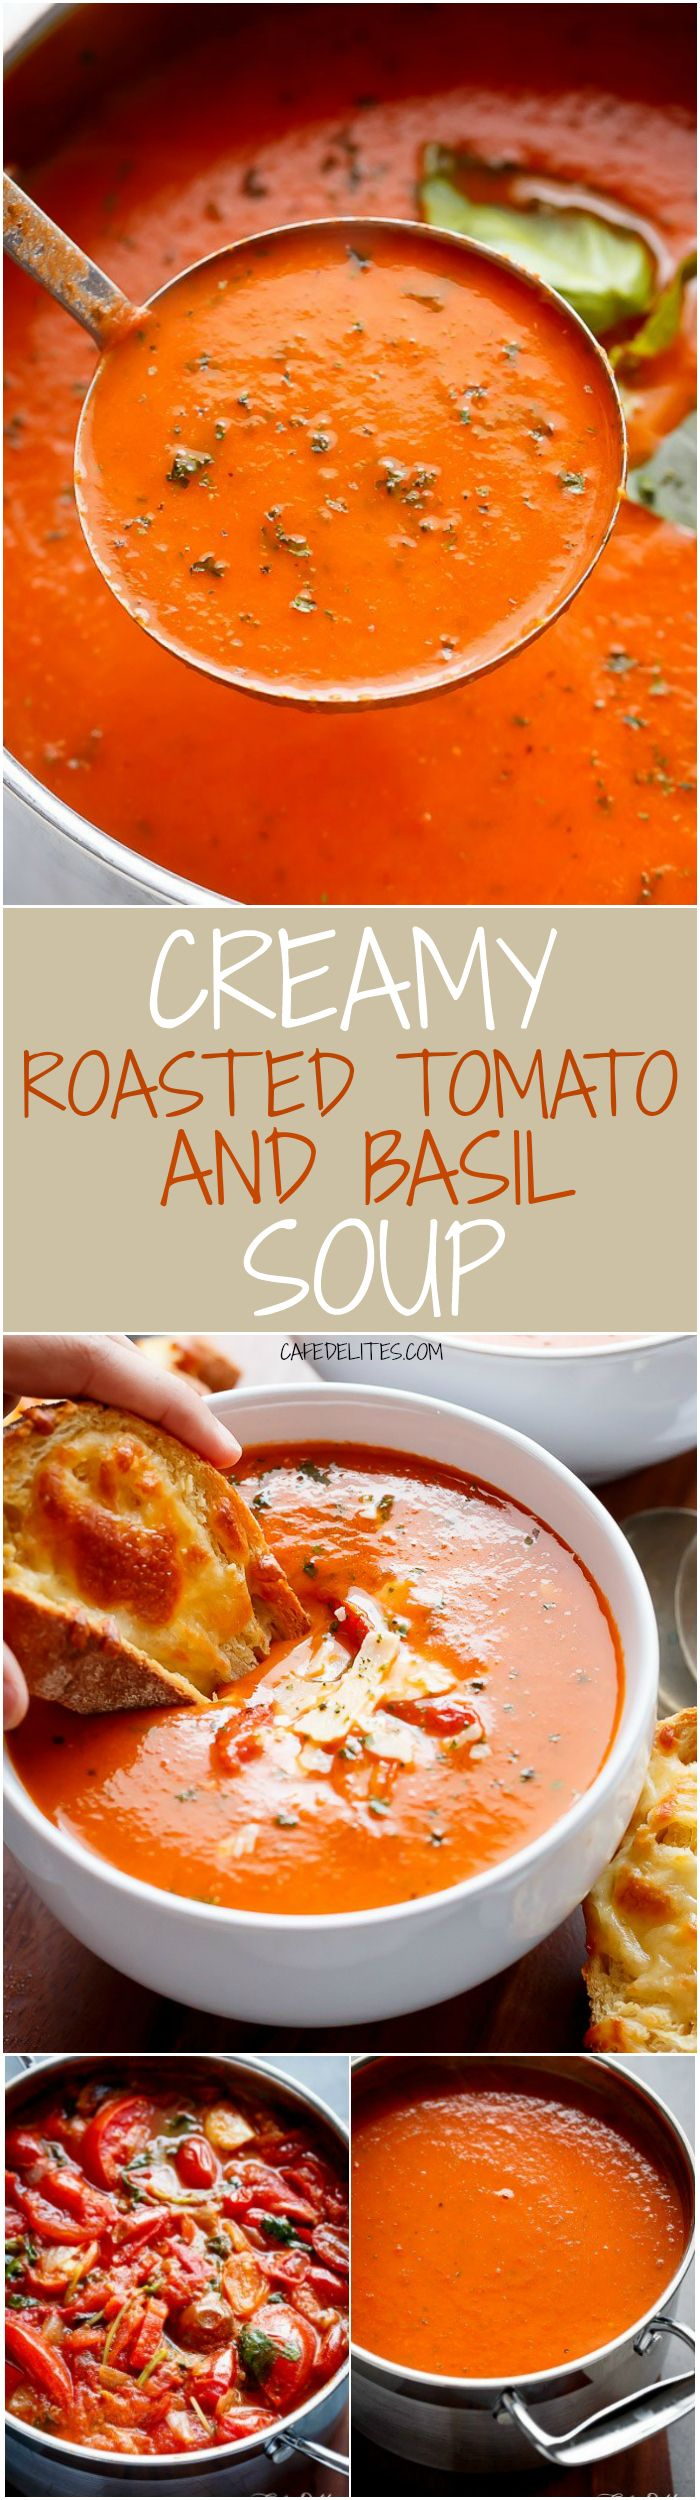 A Creamy Roasted Tomato Basil Soup full of incredible flavours, naturally thickened with no need for cream cheese or heavy creams! Popular Pins! | cafedelites.com